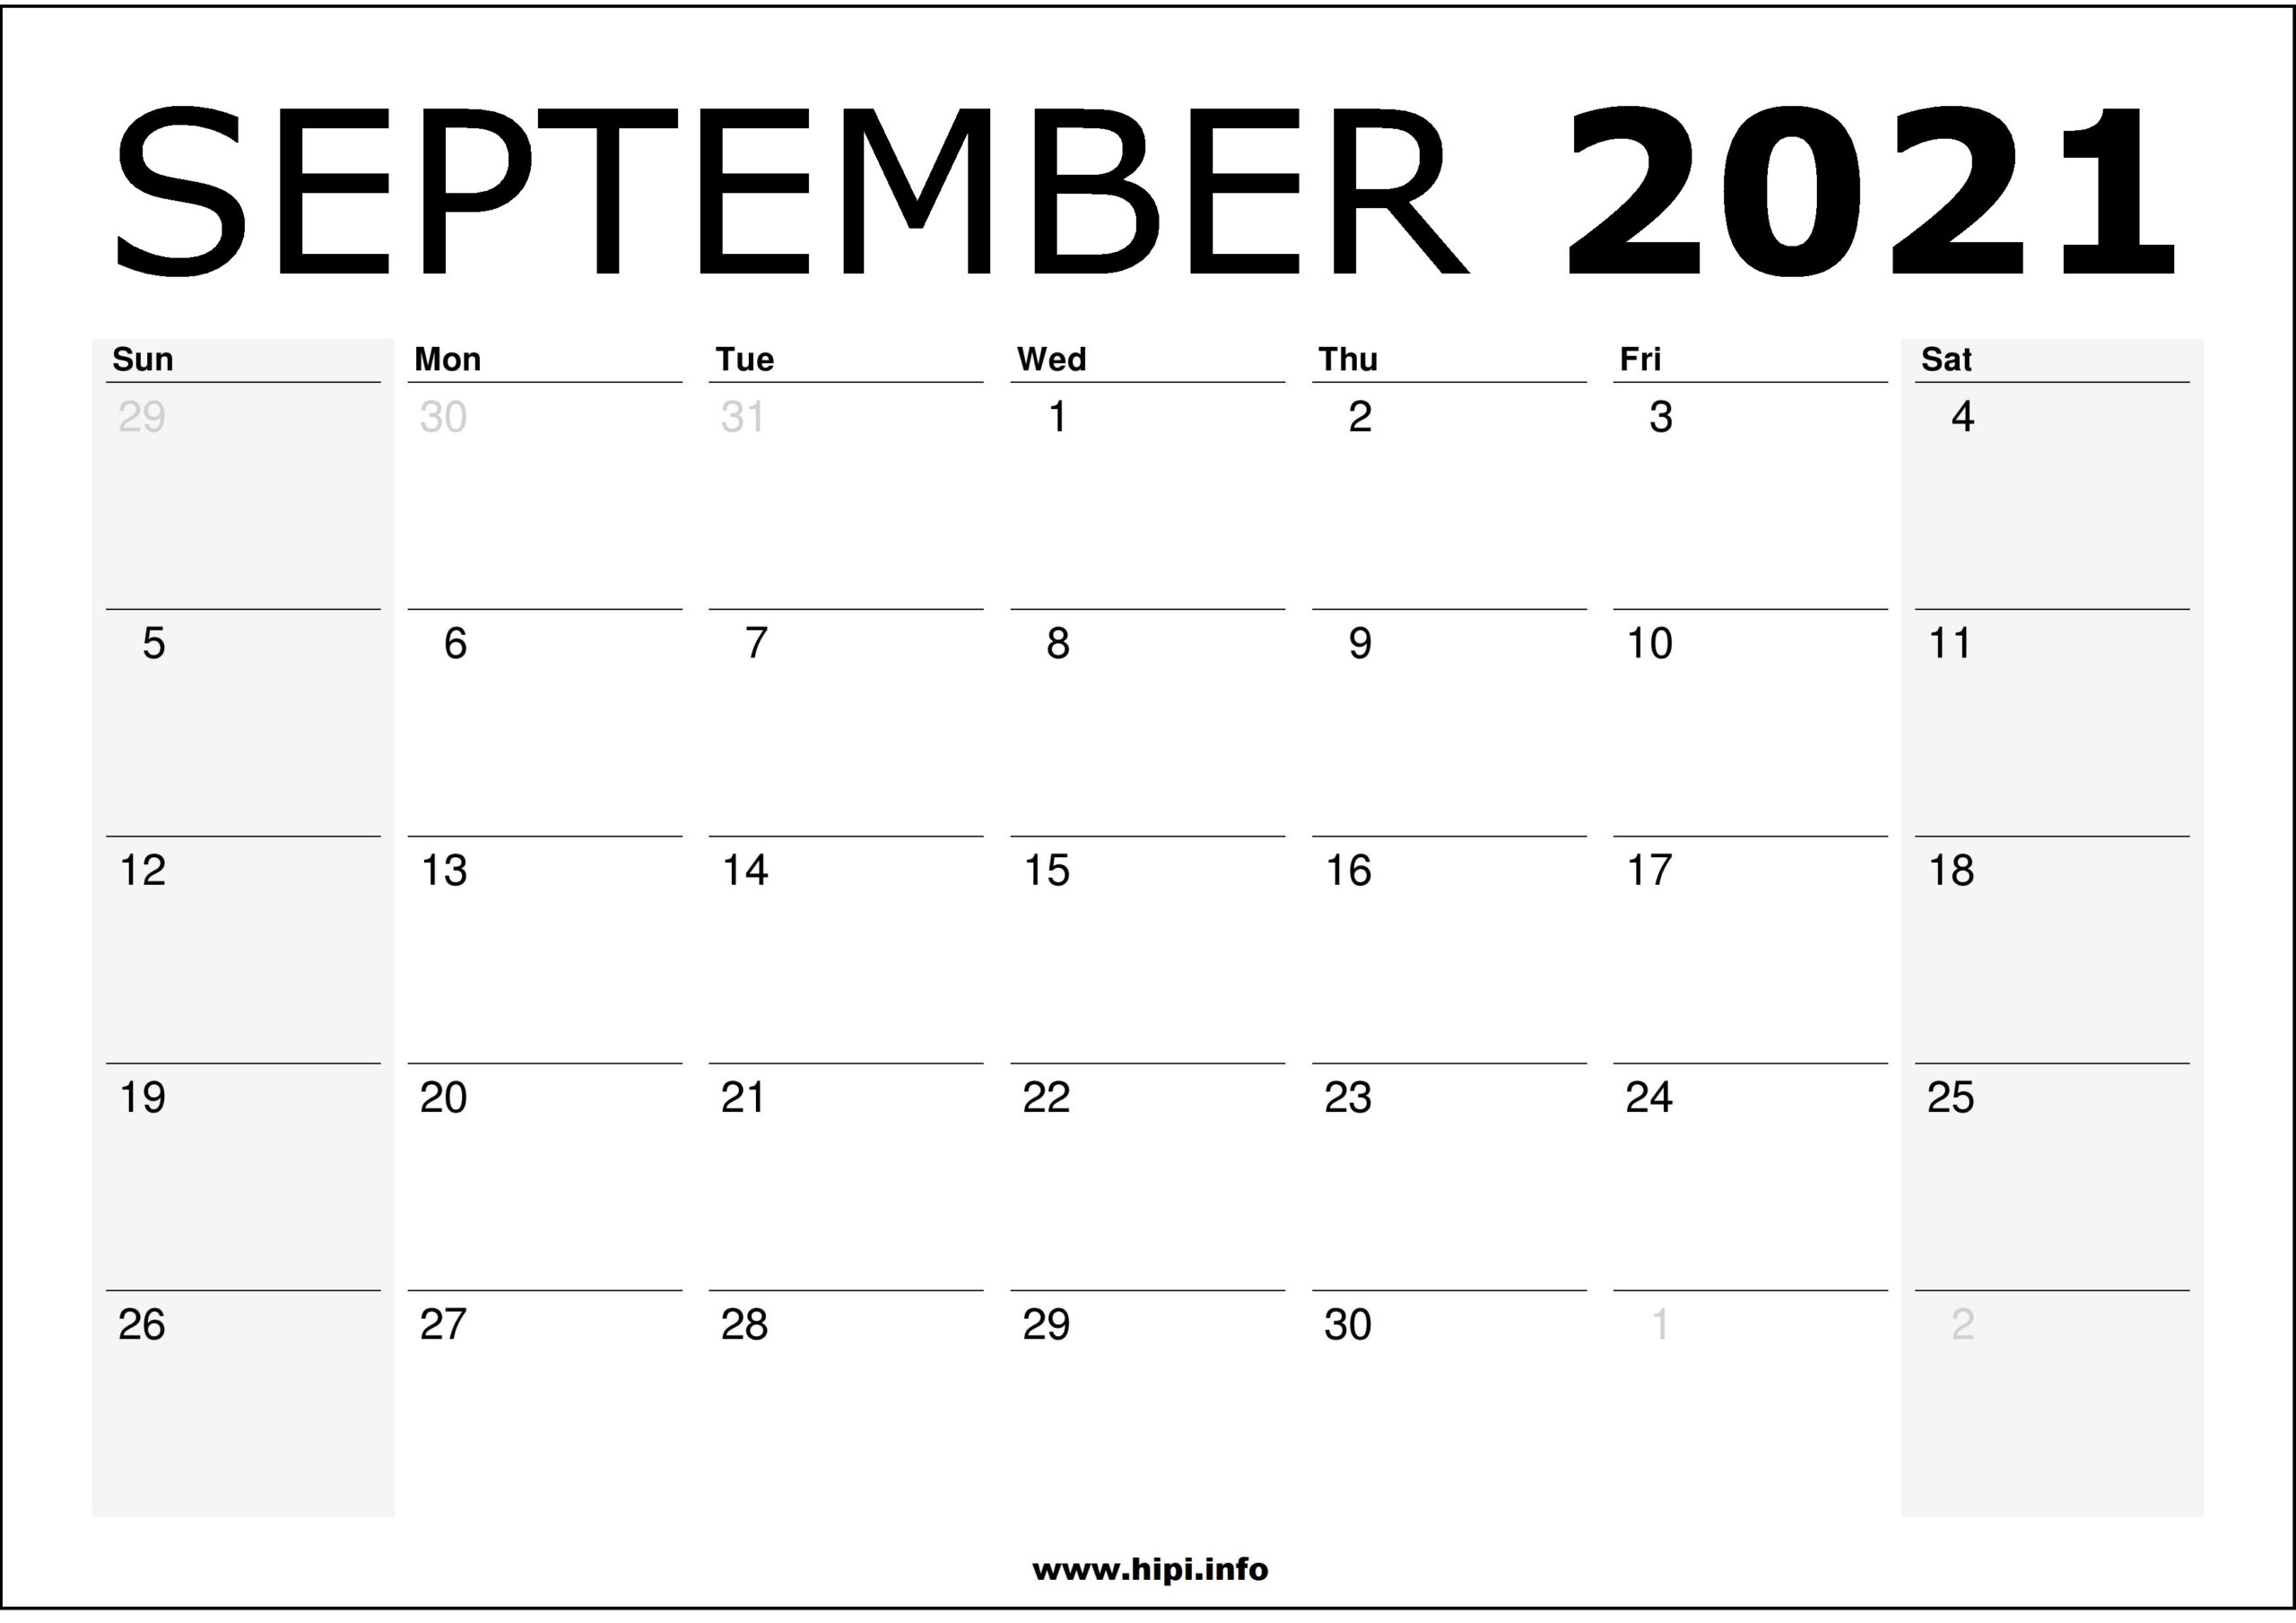 September 2021 Calendar Printable – Monthly Calendar Free